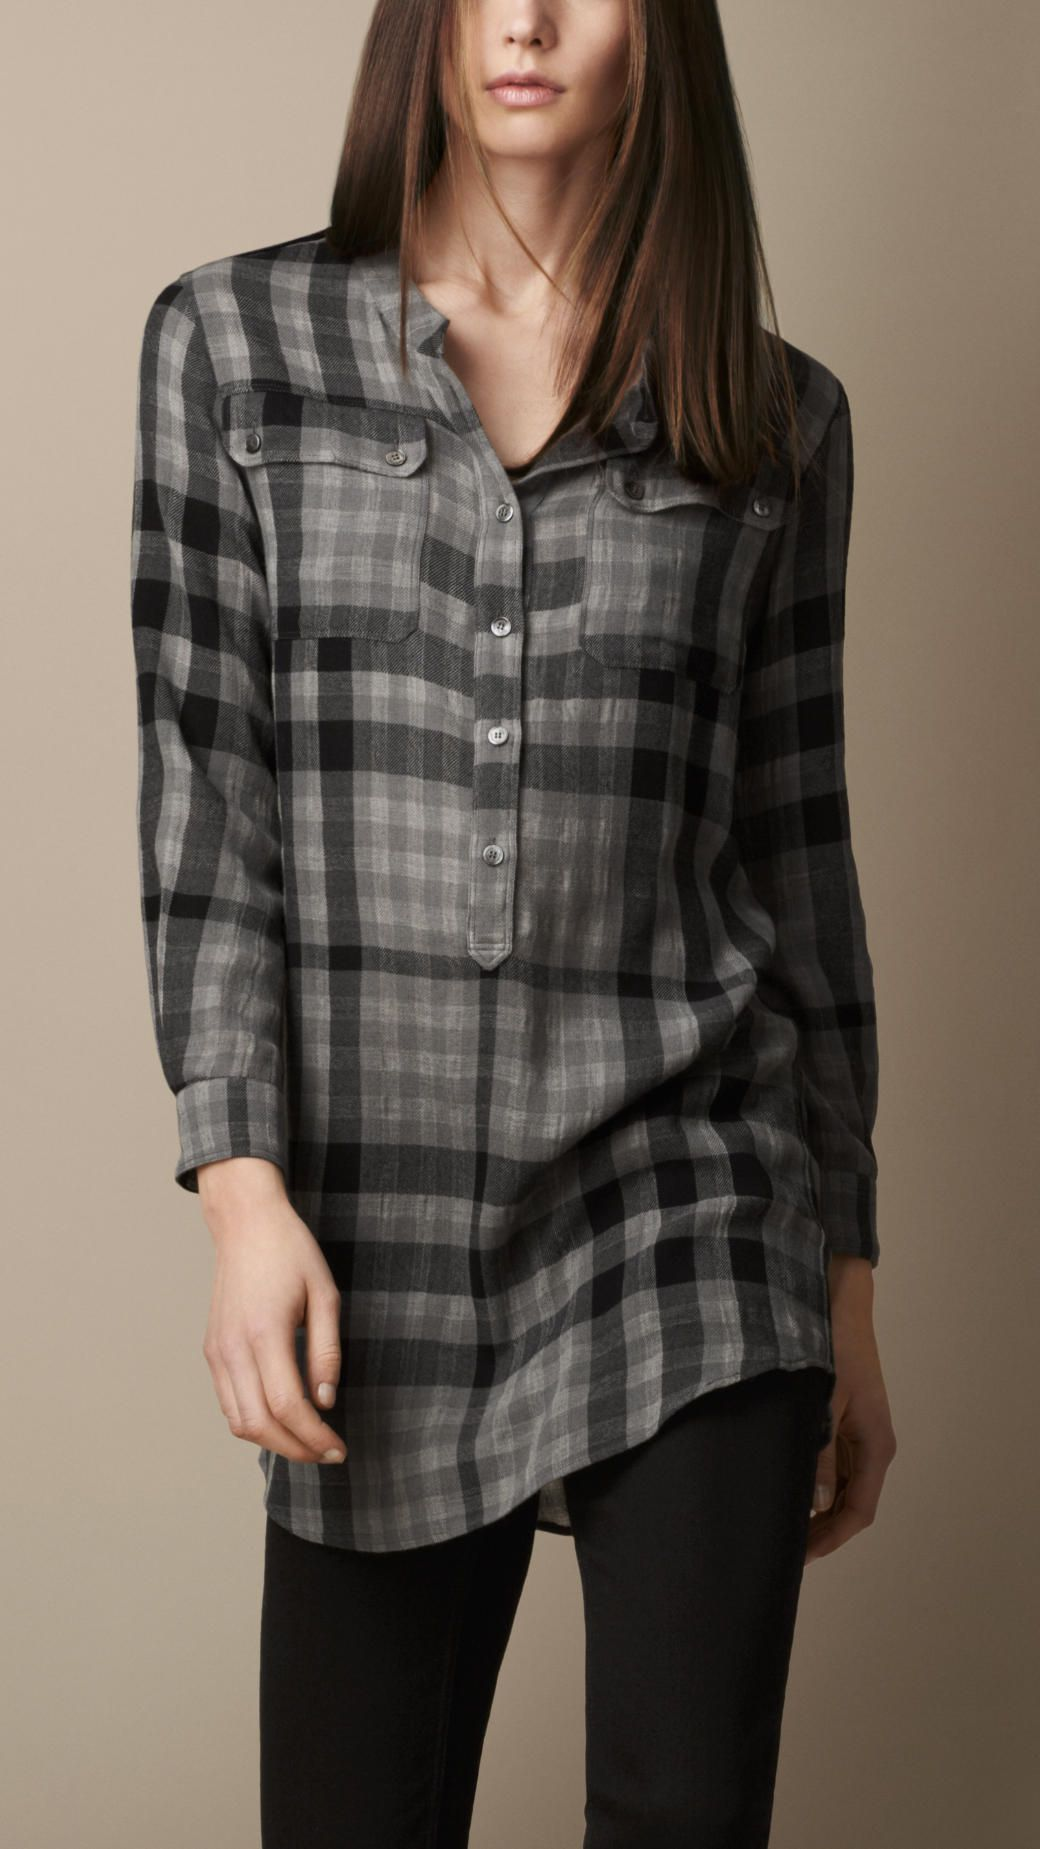 d1dad12b6bd4 Vêtements pour femme   Burberry   Because there is always a gray ...